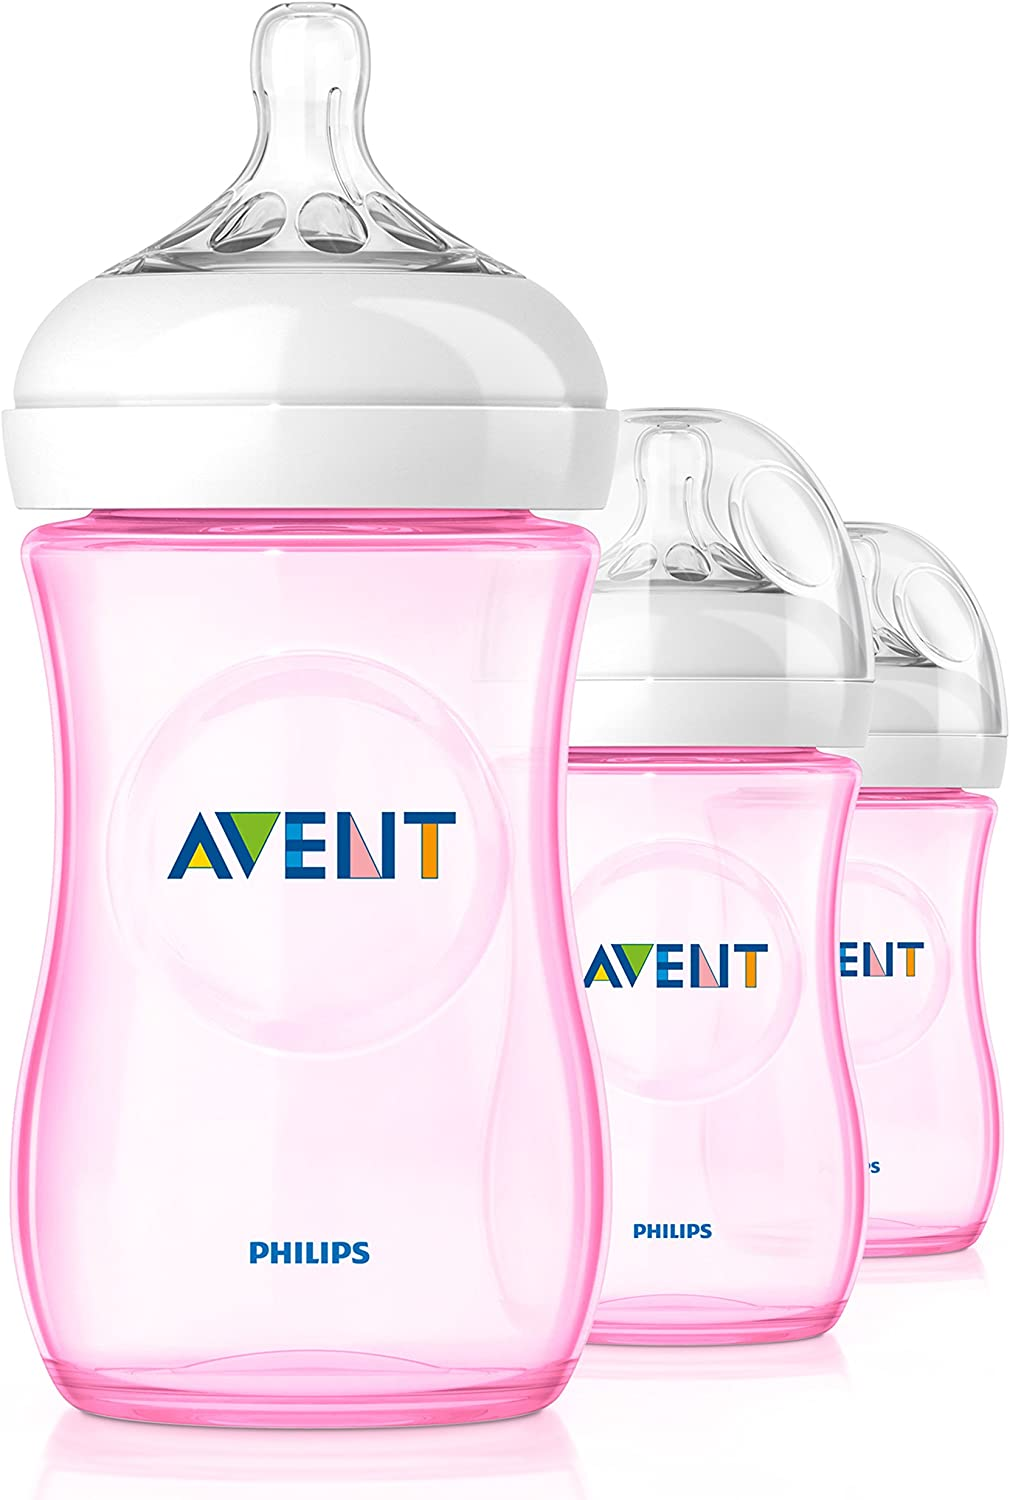 Philips Avent SCF694/17 - Biberón, tetina suave y flexible, anticólicos, PP 0% BPA, 260 ml, color rosa: Amazon.es: Bebé